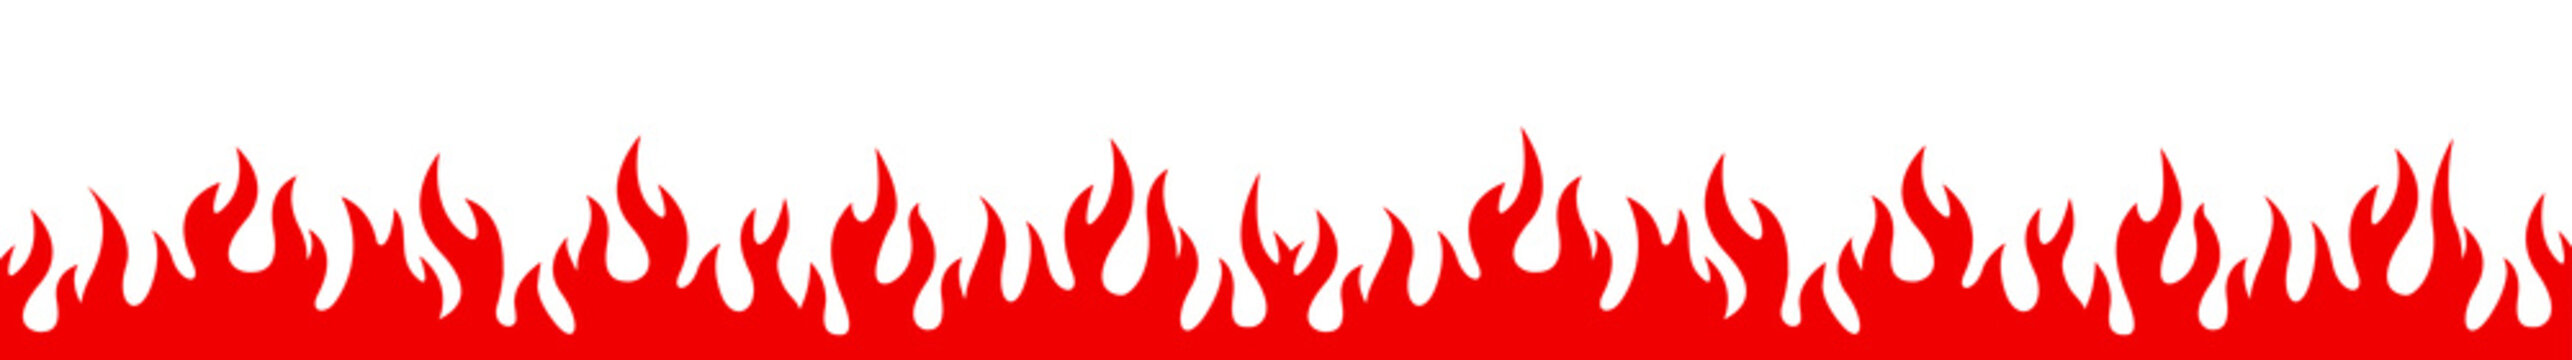 Flame on a white background. Vector illustration for design - vector